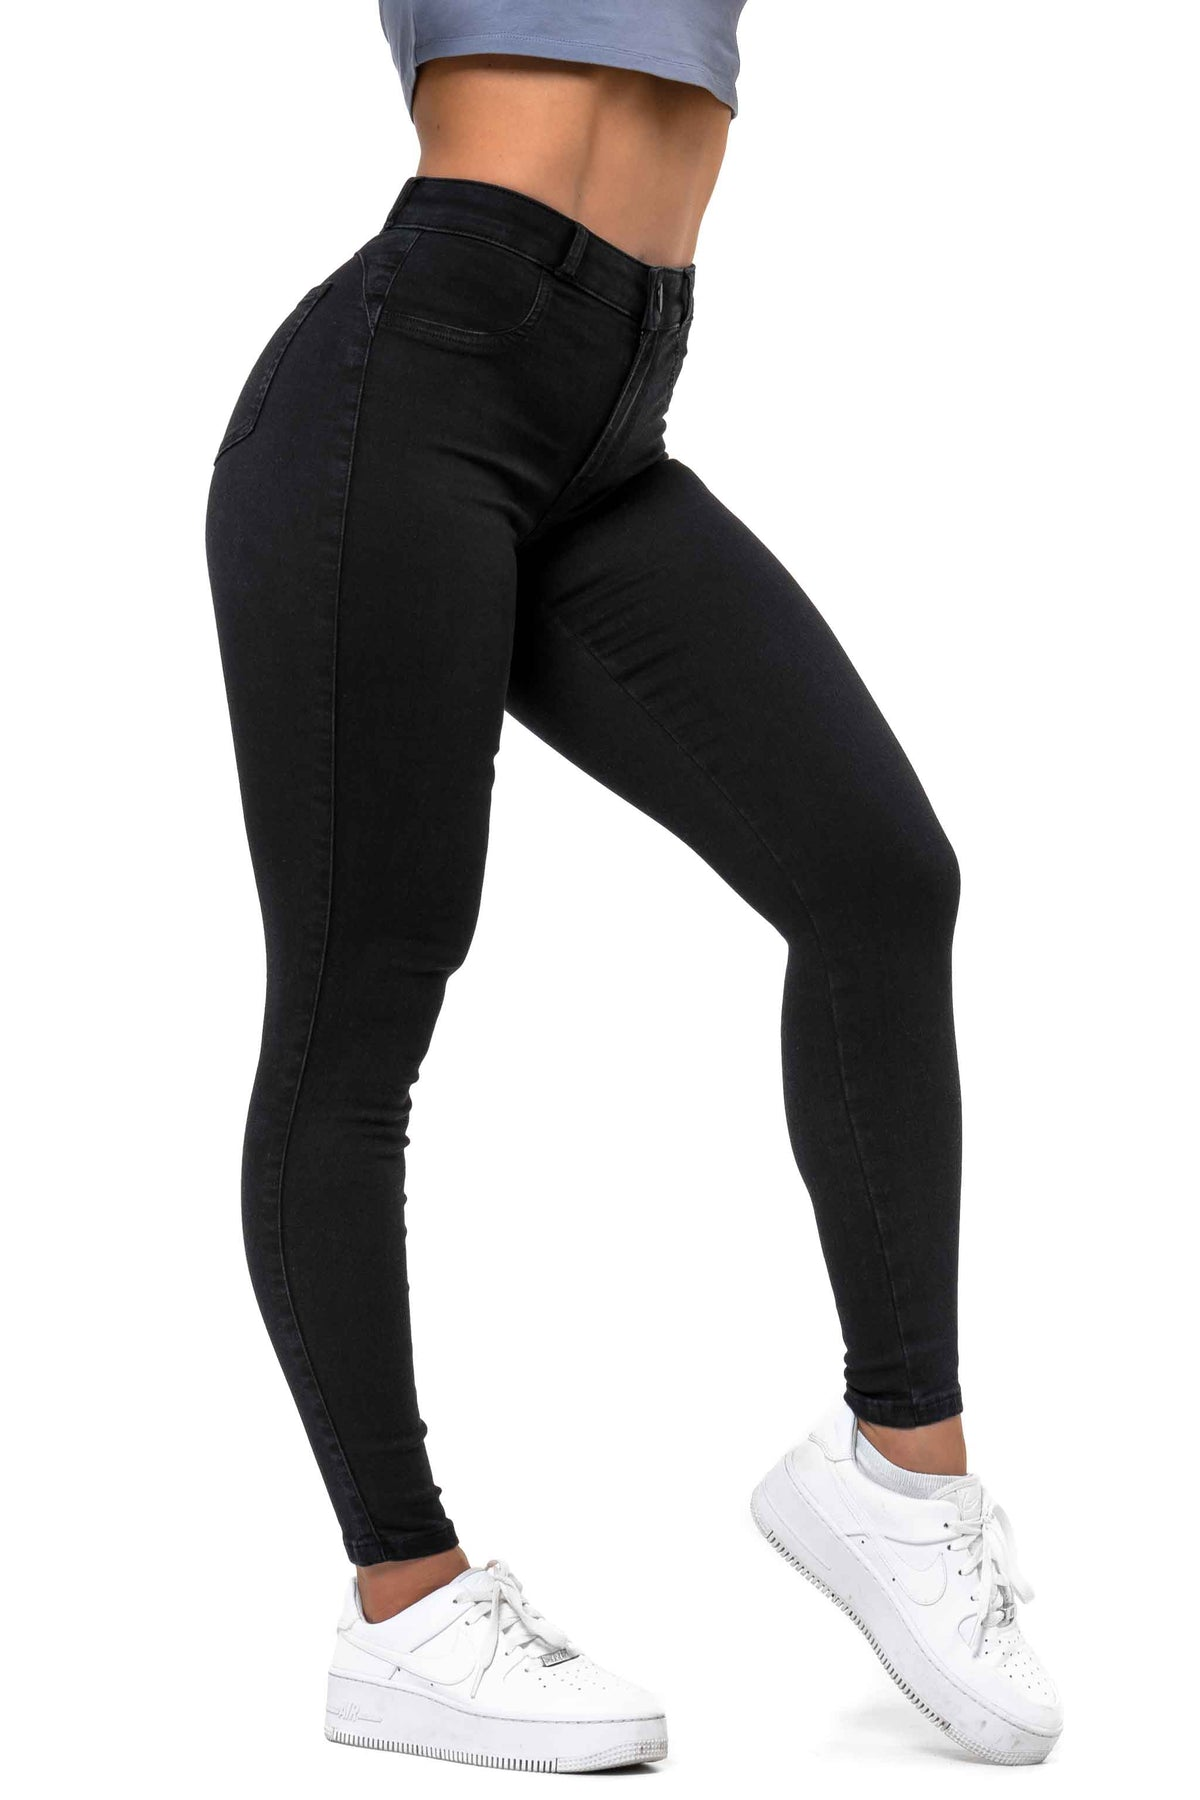 Womens Contour V2 Mid Waisted Fitjeans - Black